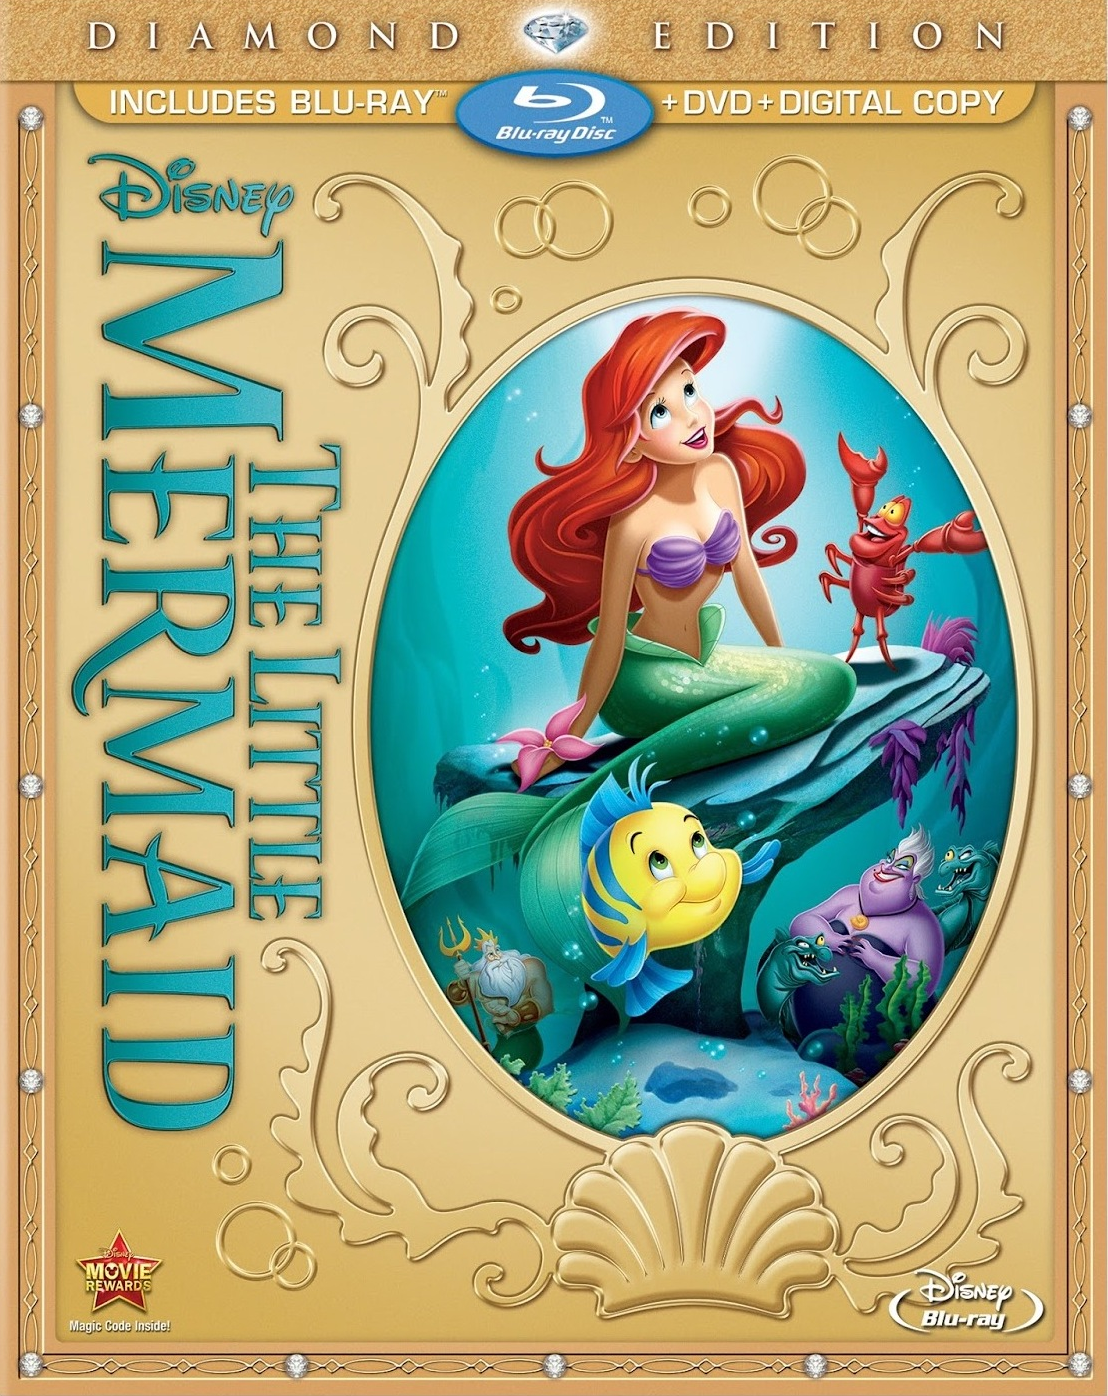 Disney's the little mermaid: diamond edition coming to blu-ray.